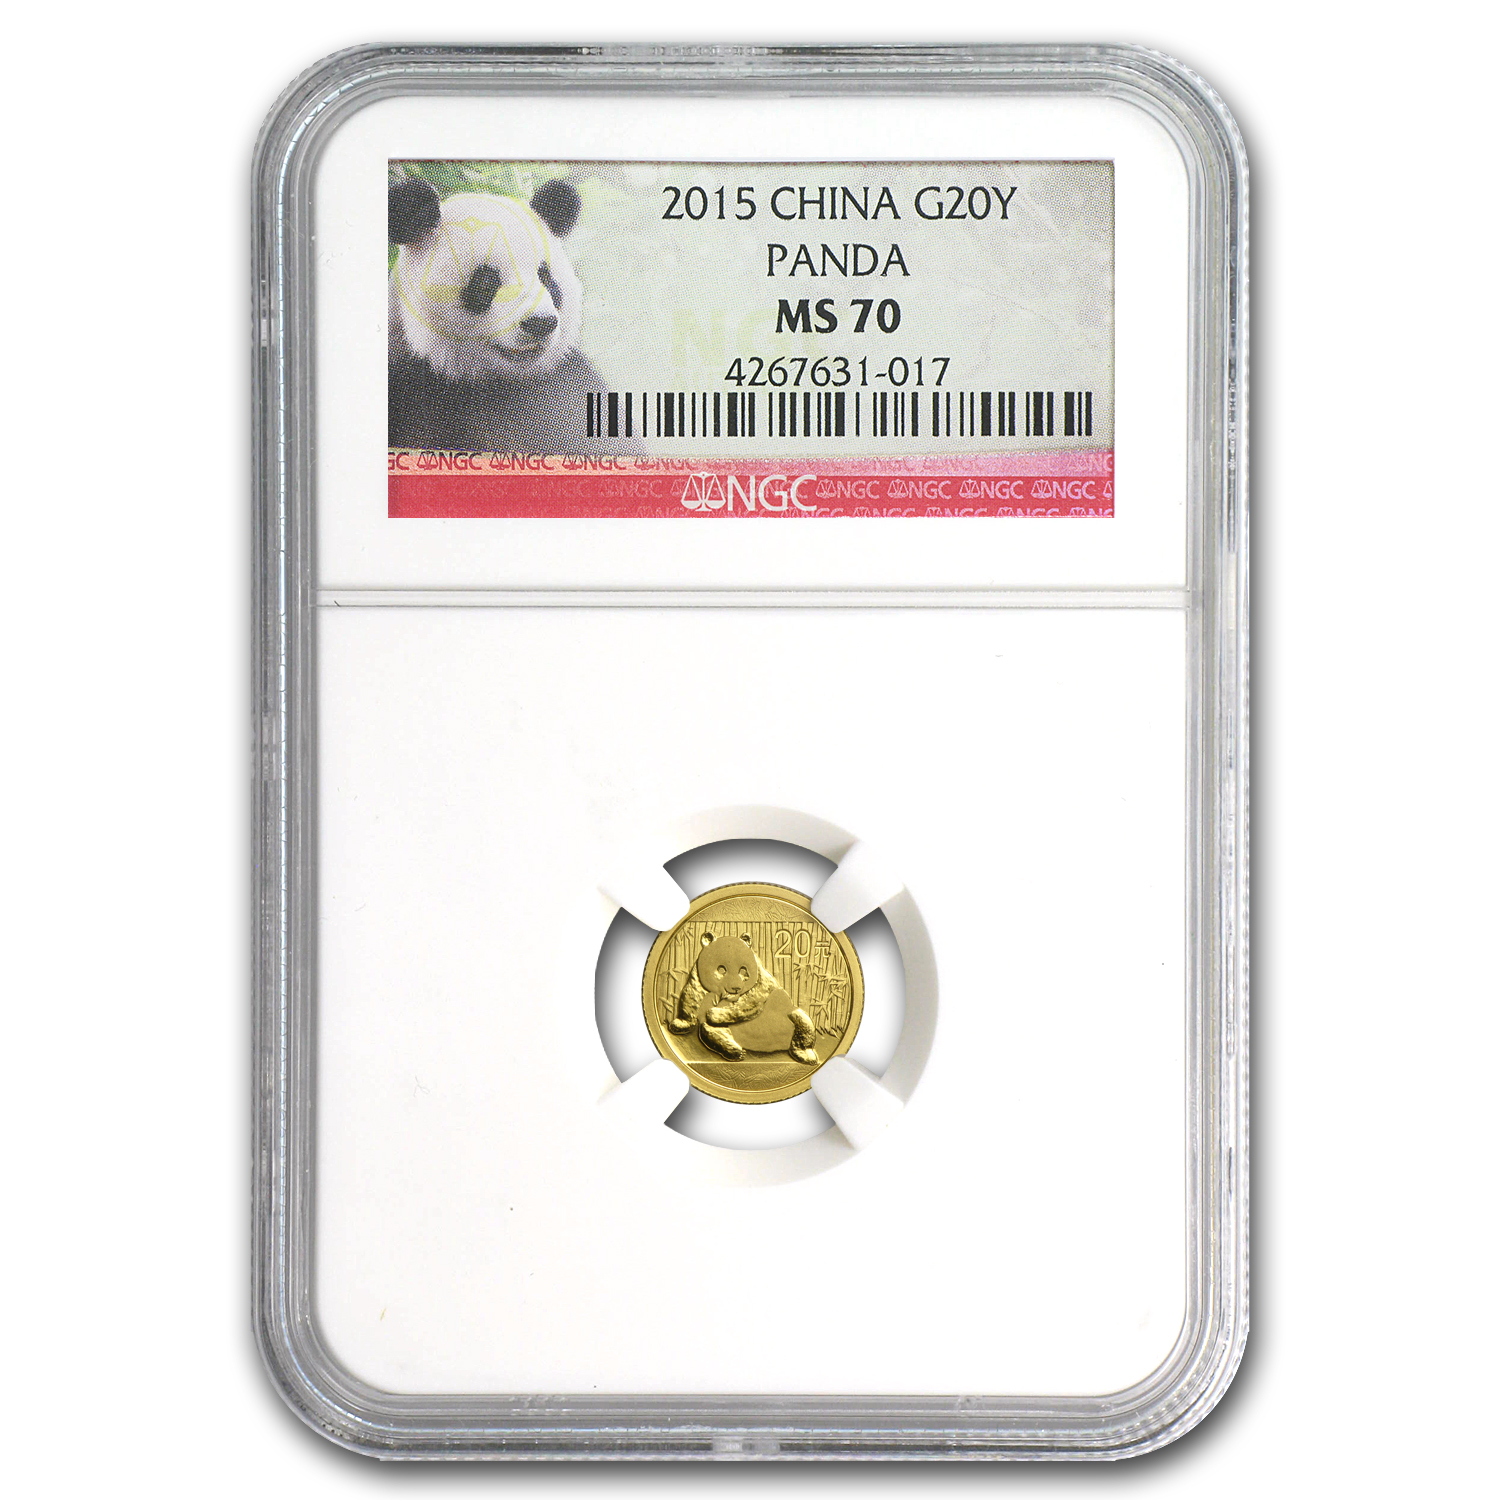 2015 China 1/20 oz Gold Panda MS-70 NGC